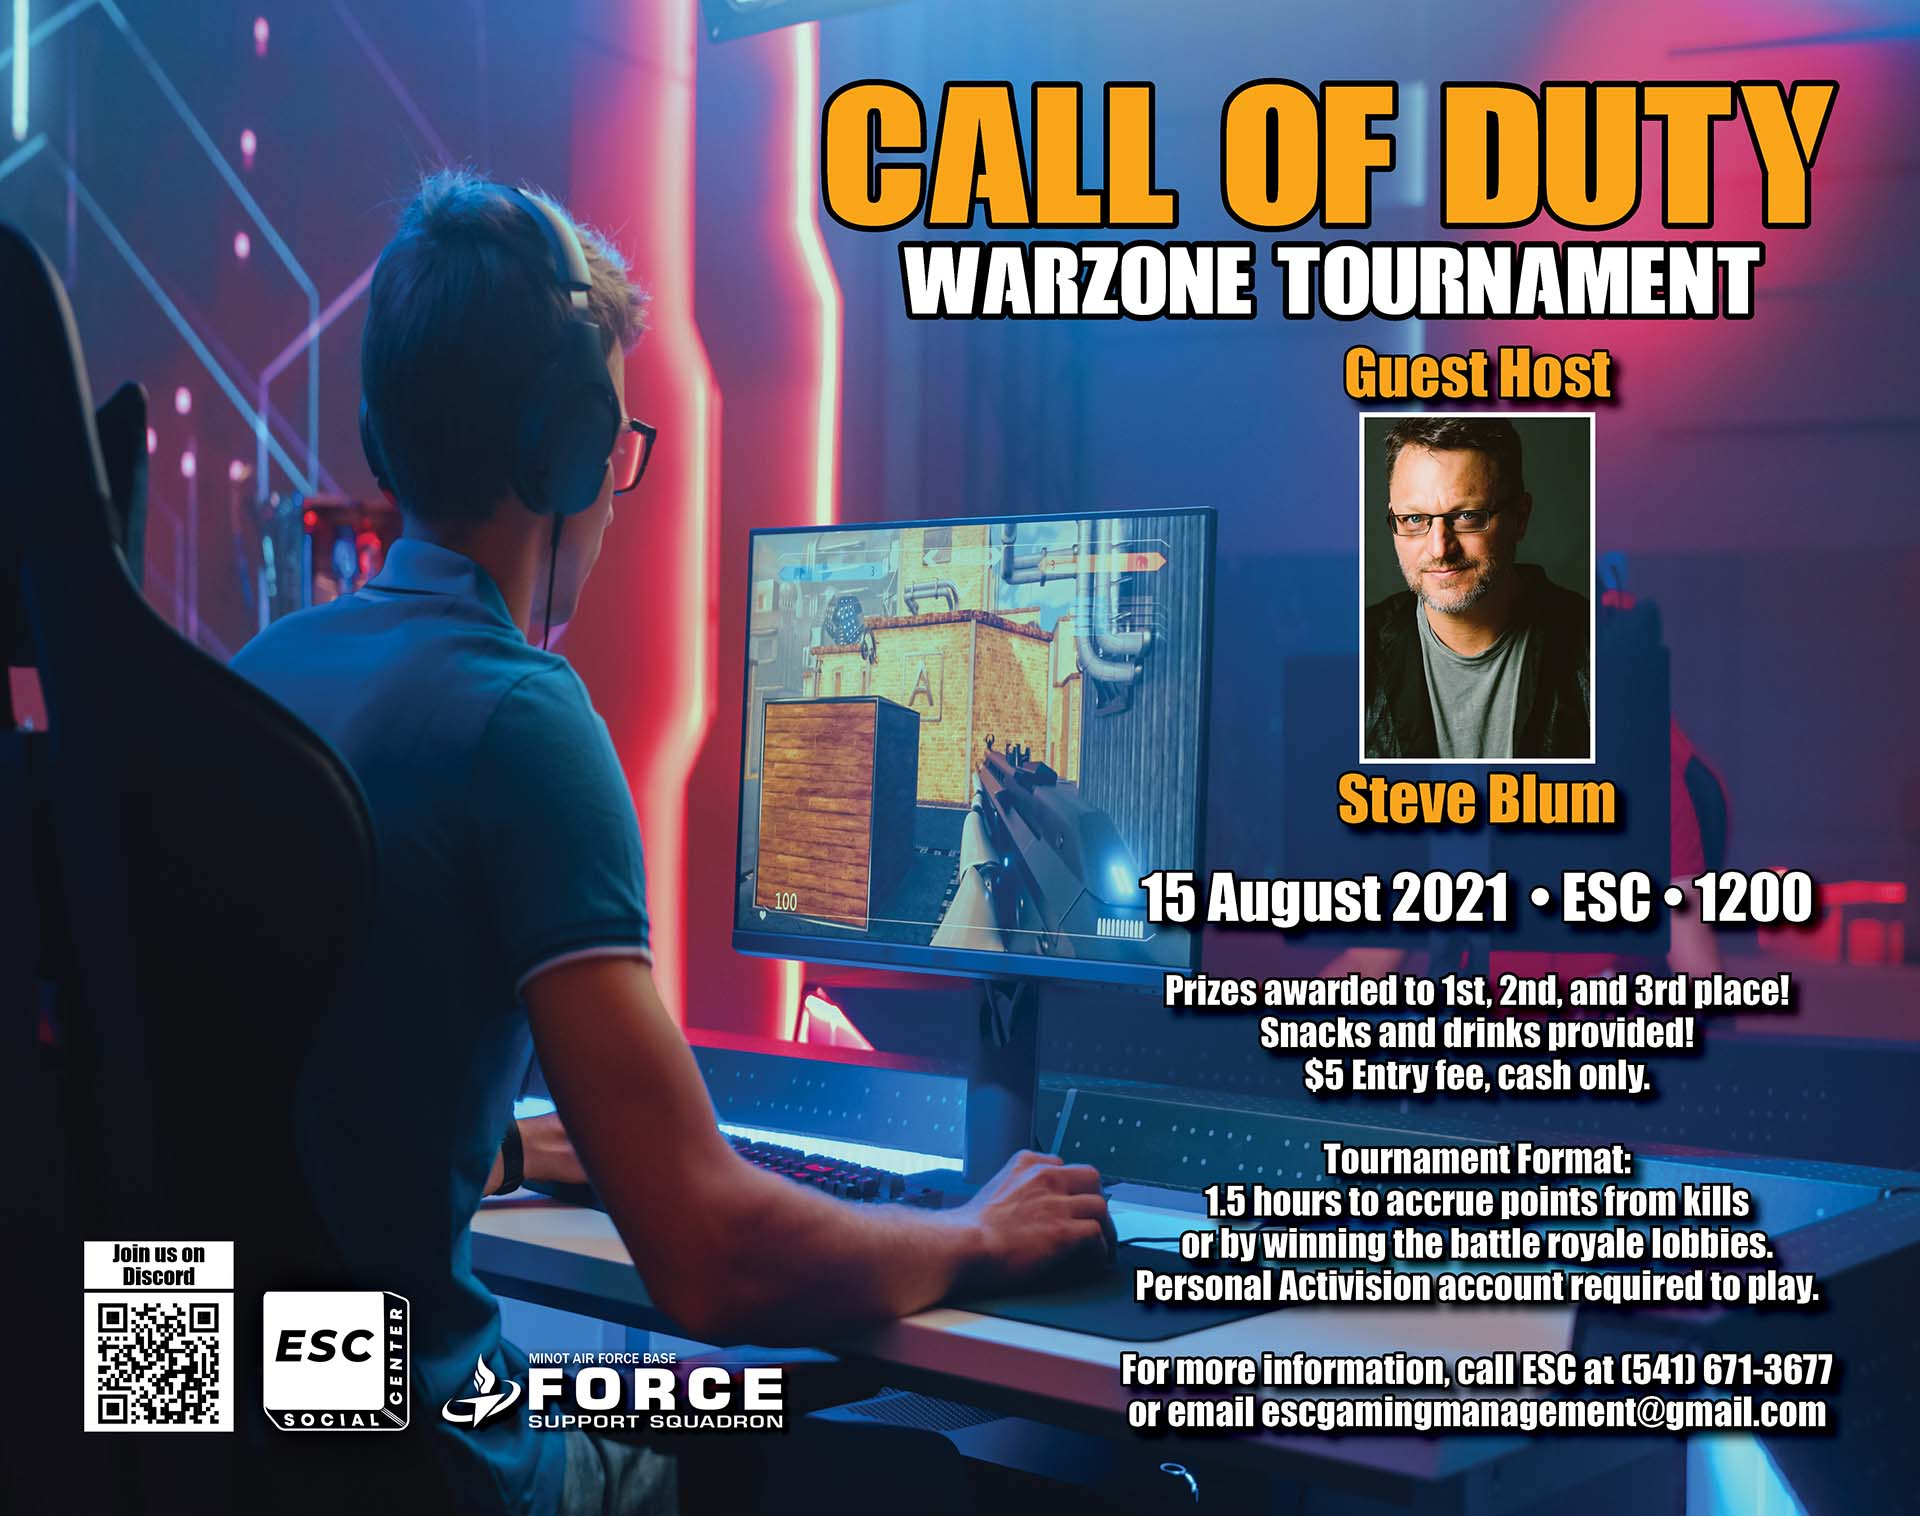 08.15 Call of Duty Warzone Tournament